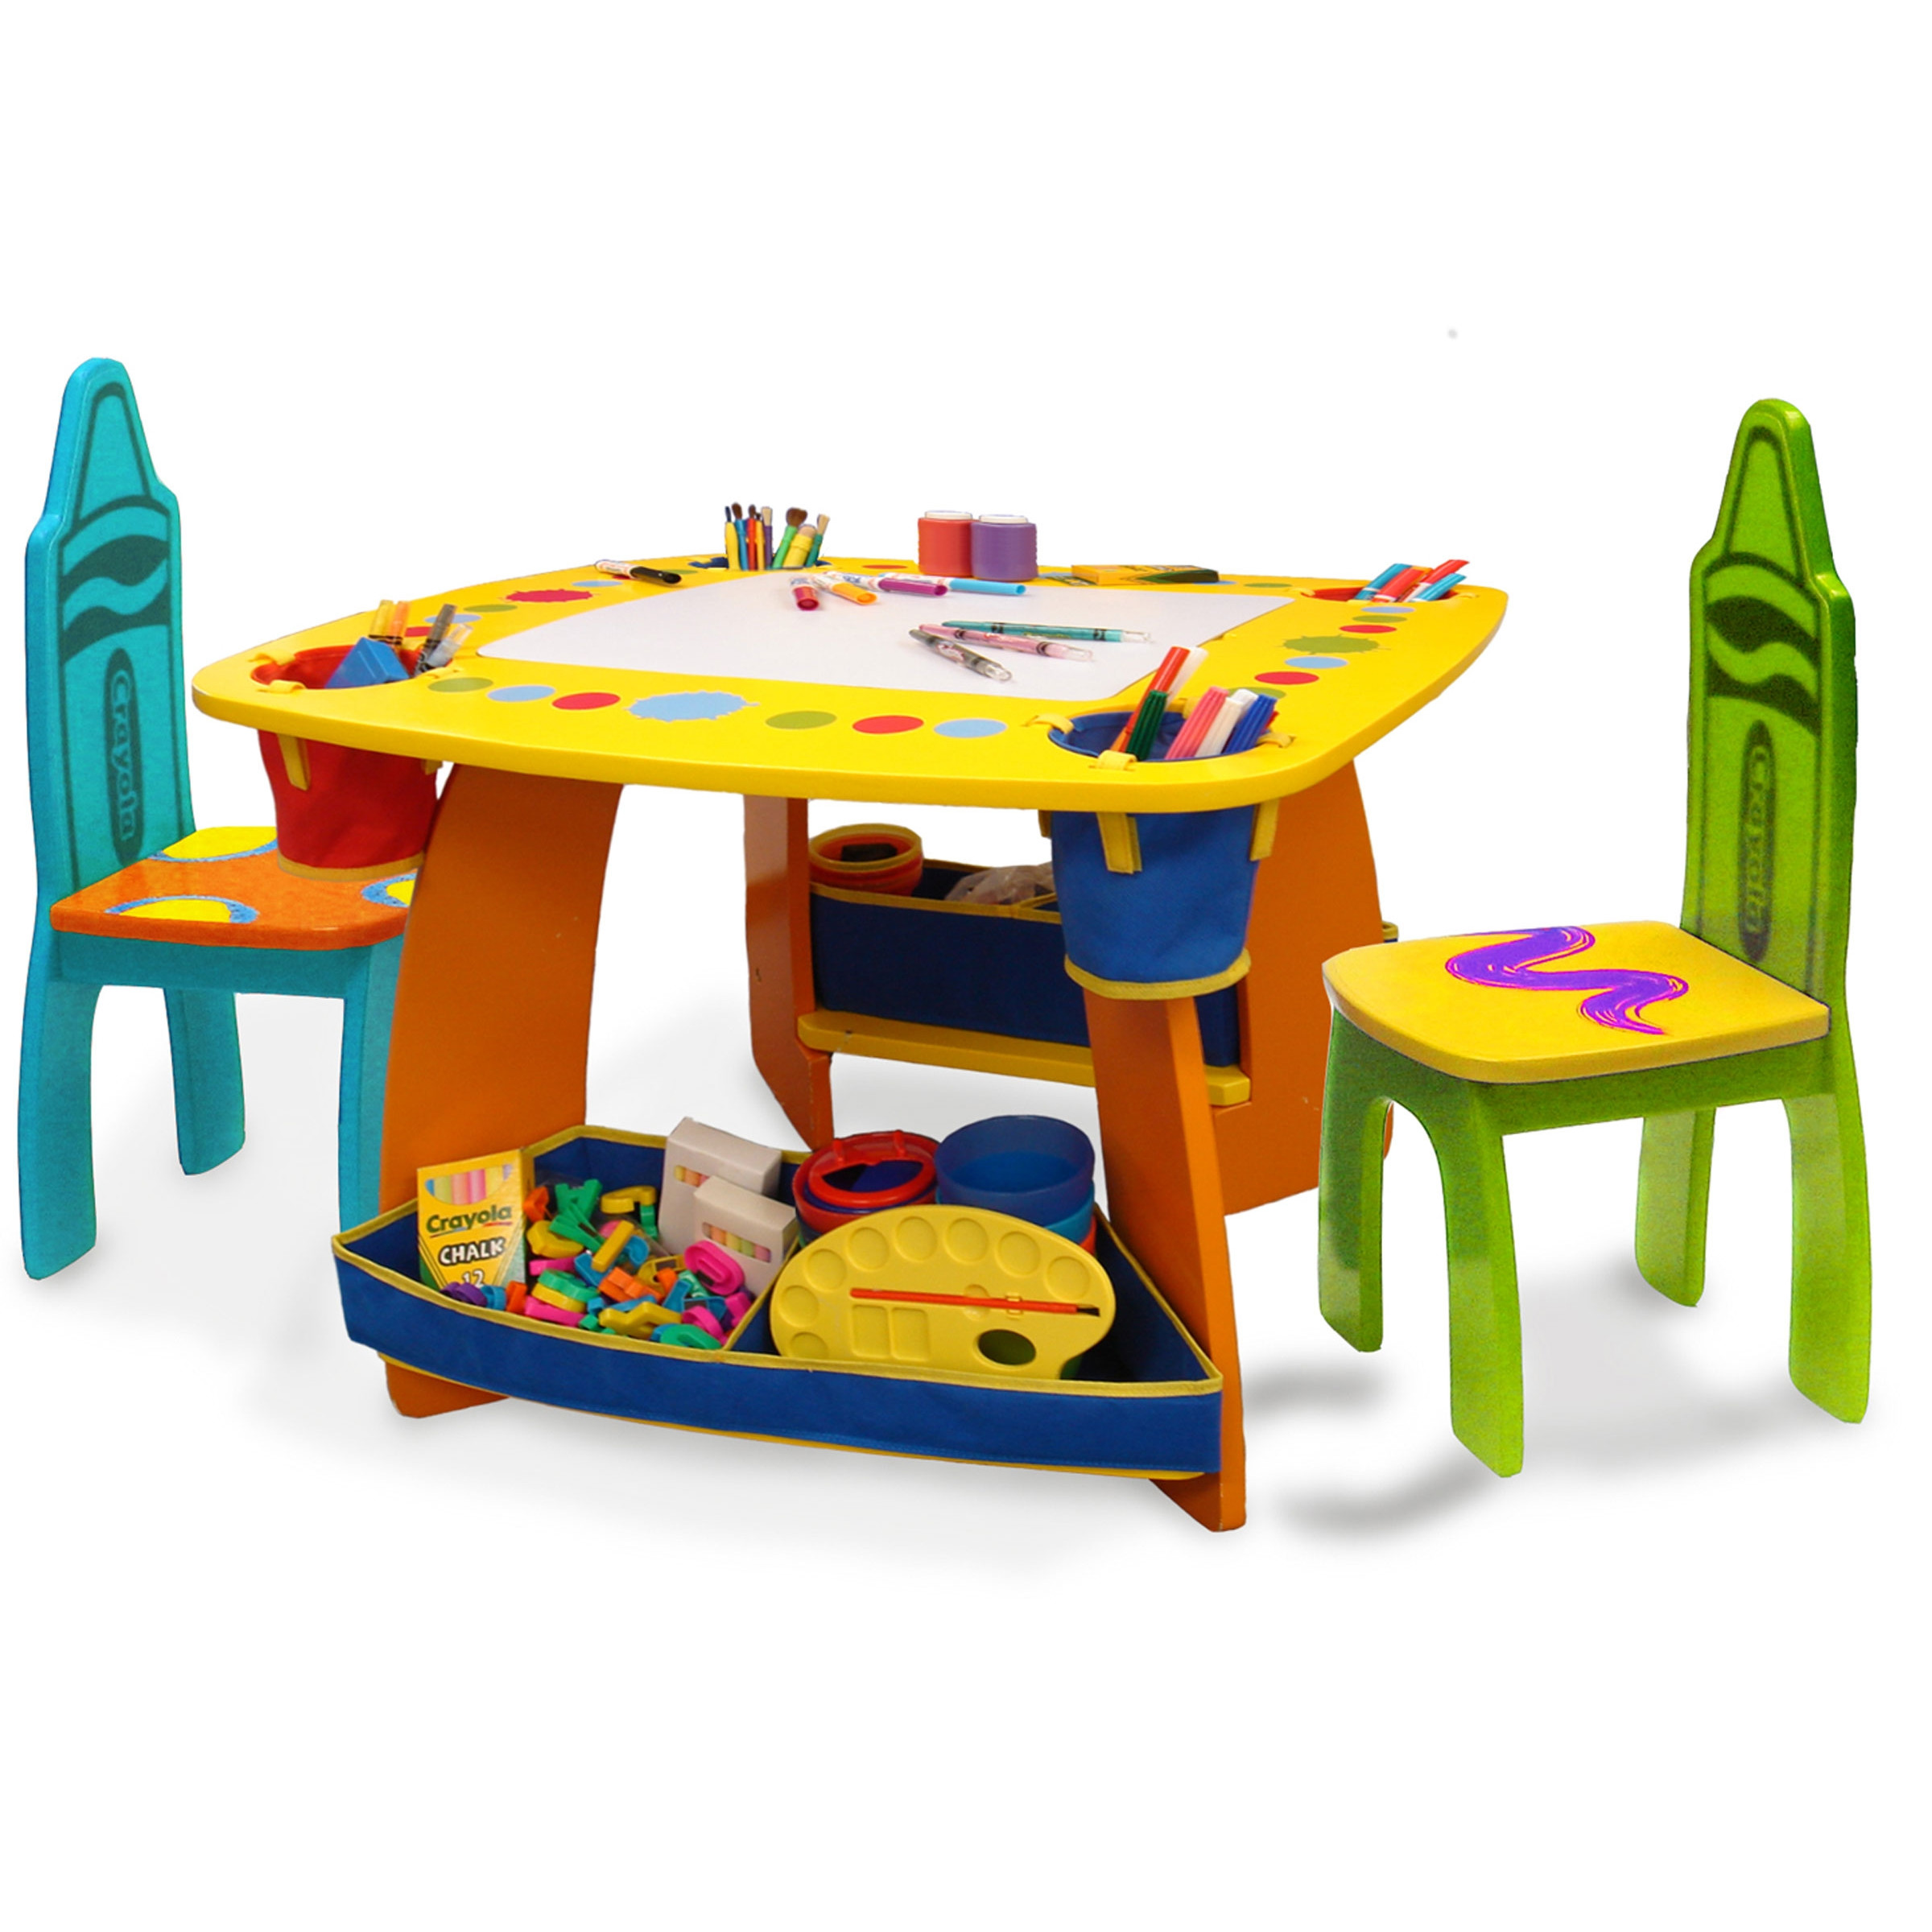 Choosing the perfect toddlers chairs - darbylanefurniture.com